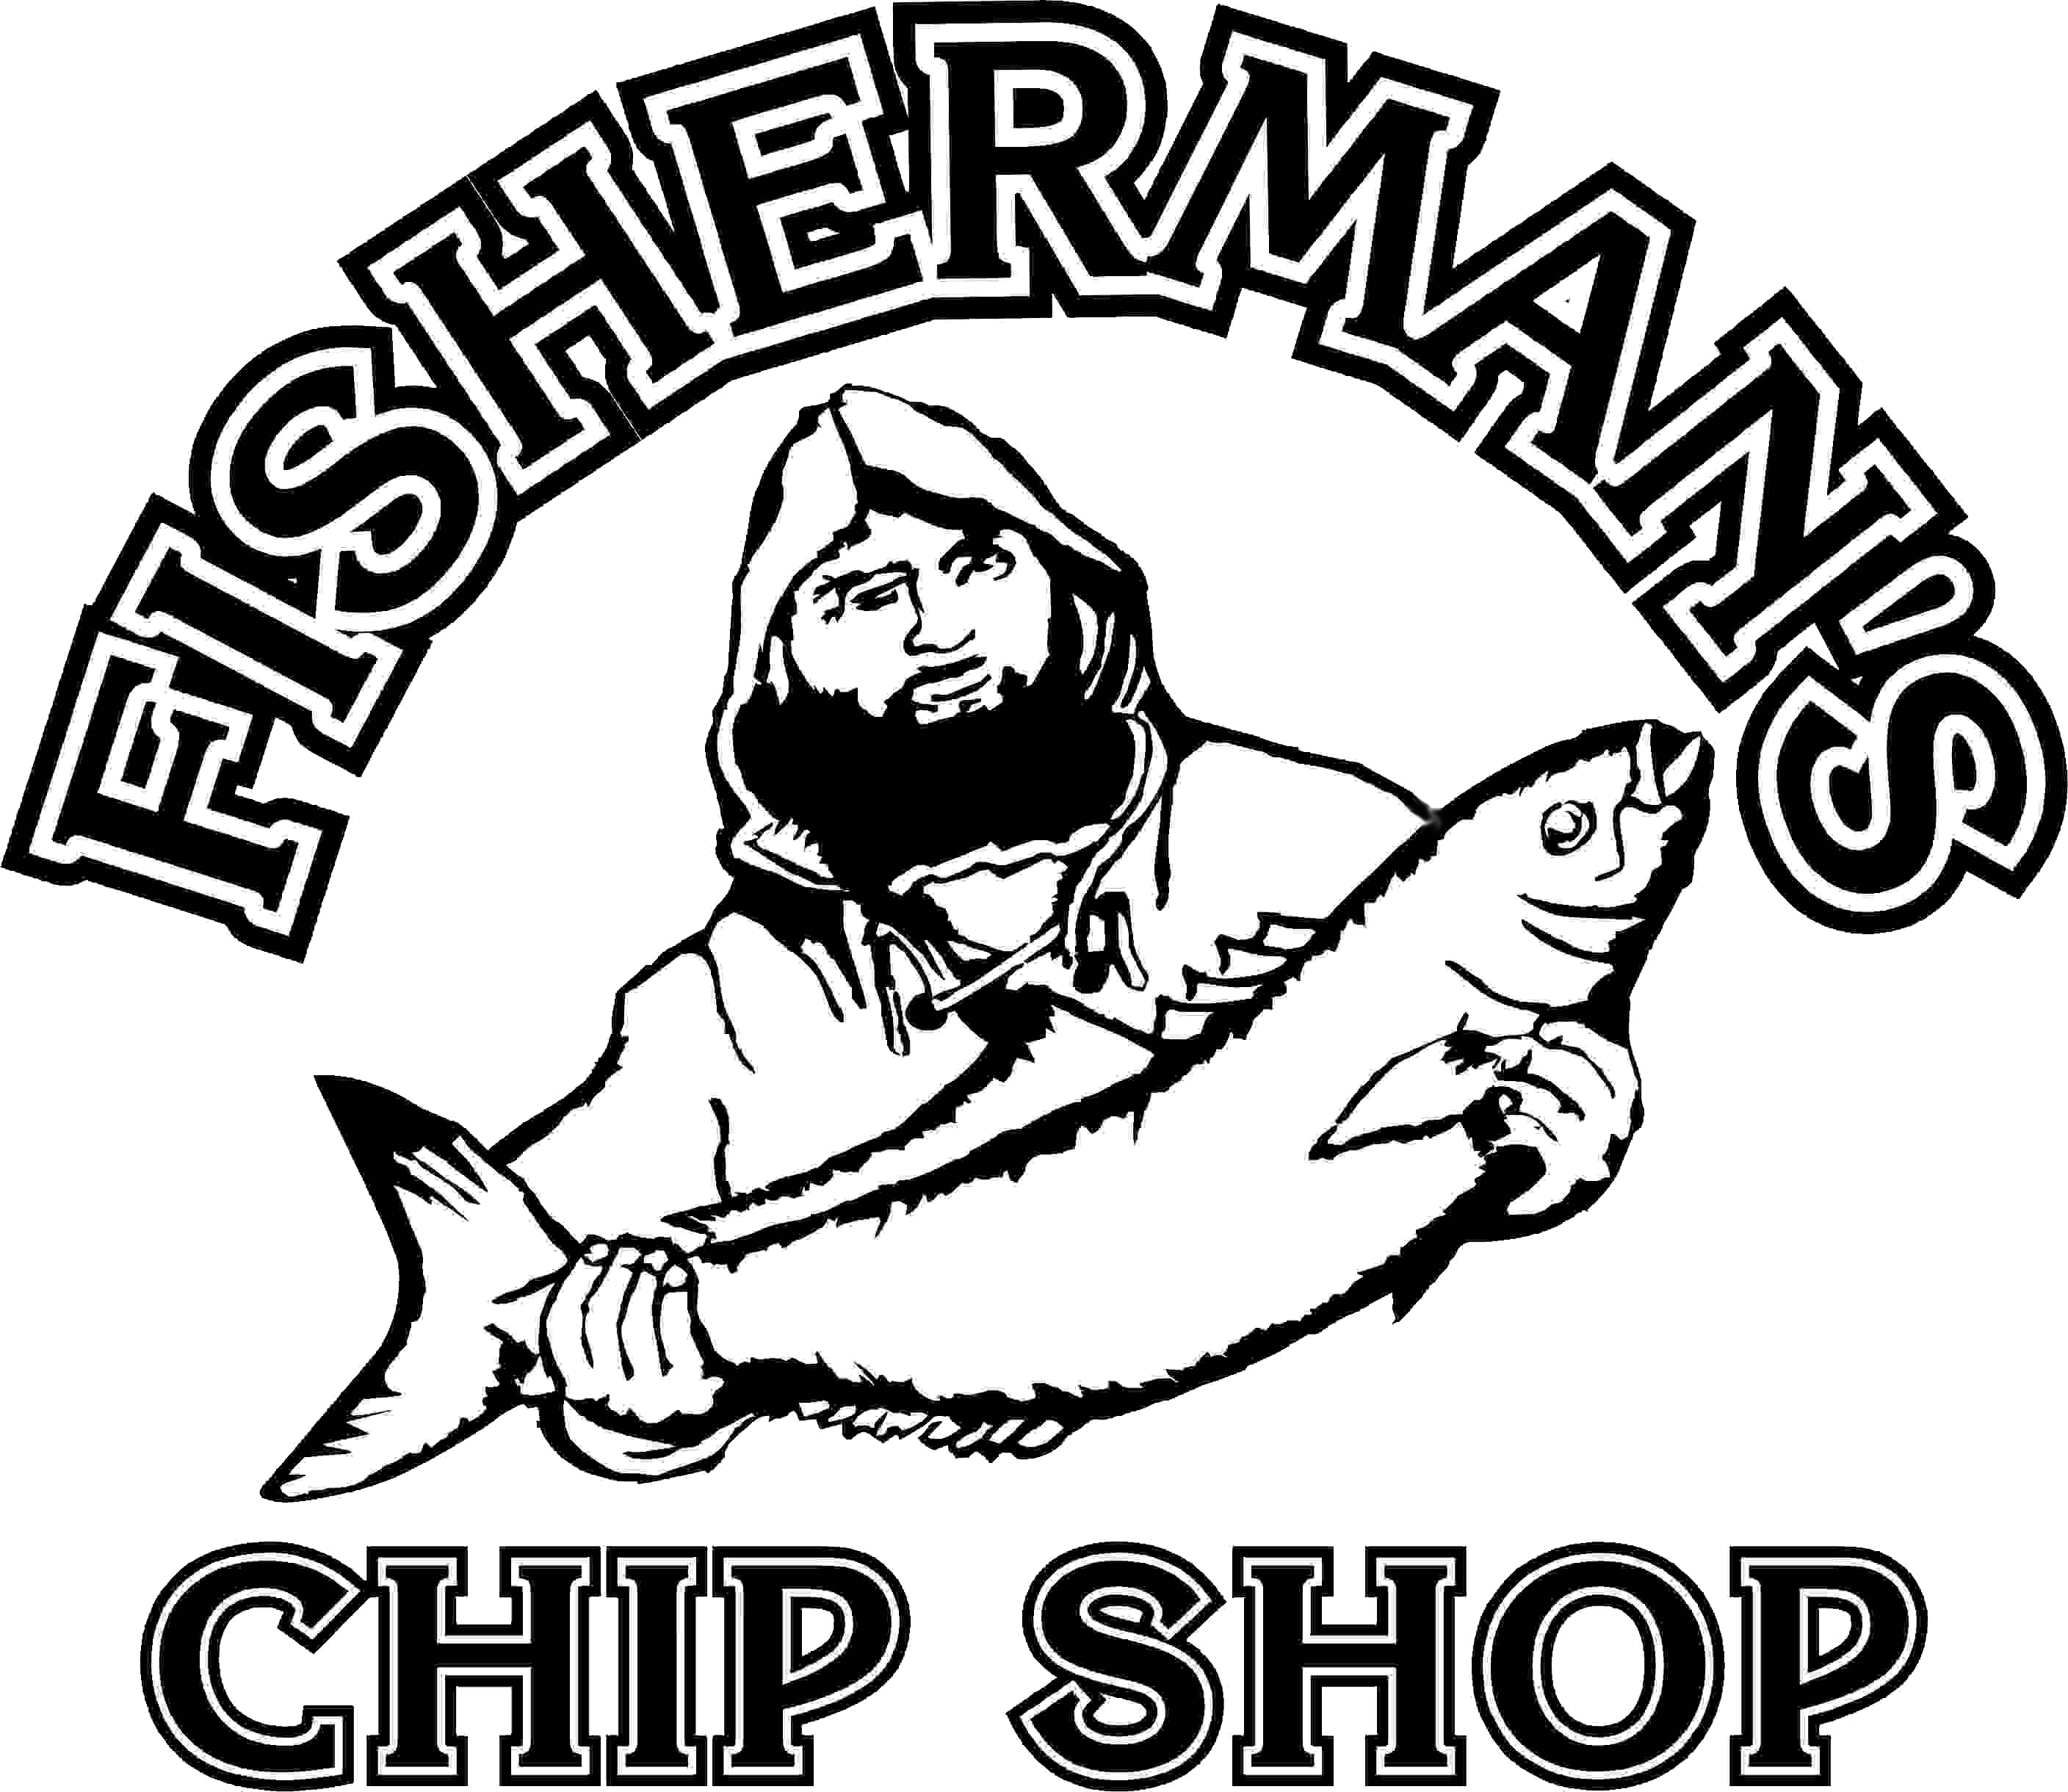 Shop clipart fish and chip shop. Chips drawing at getdrawings